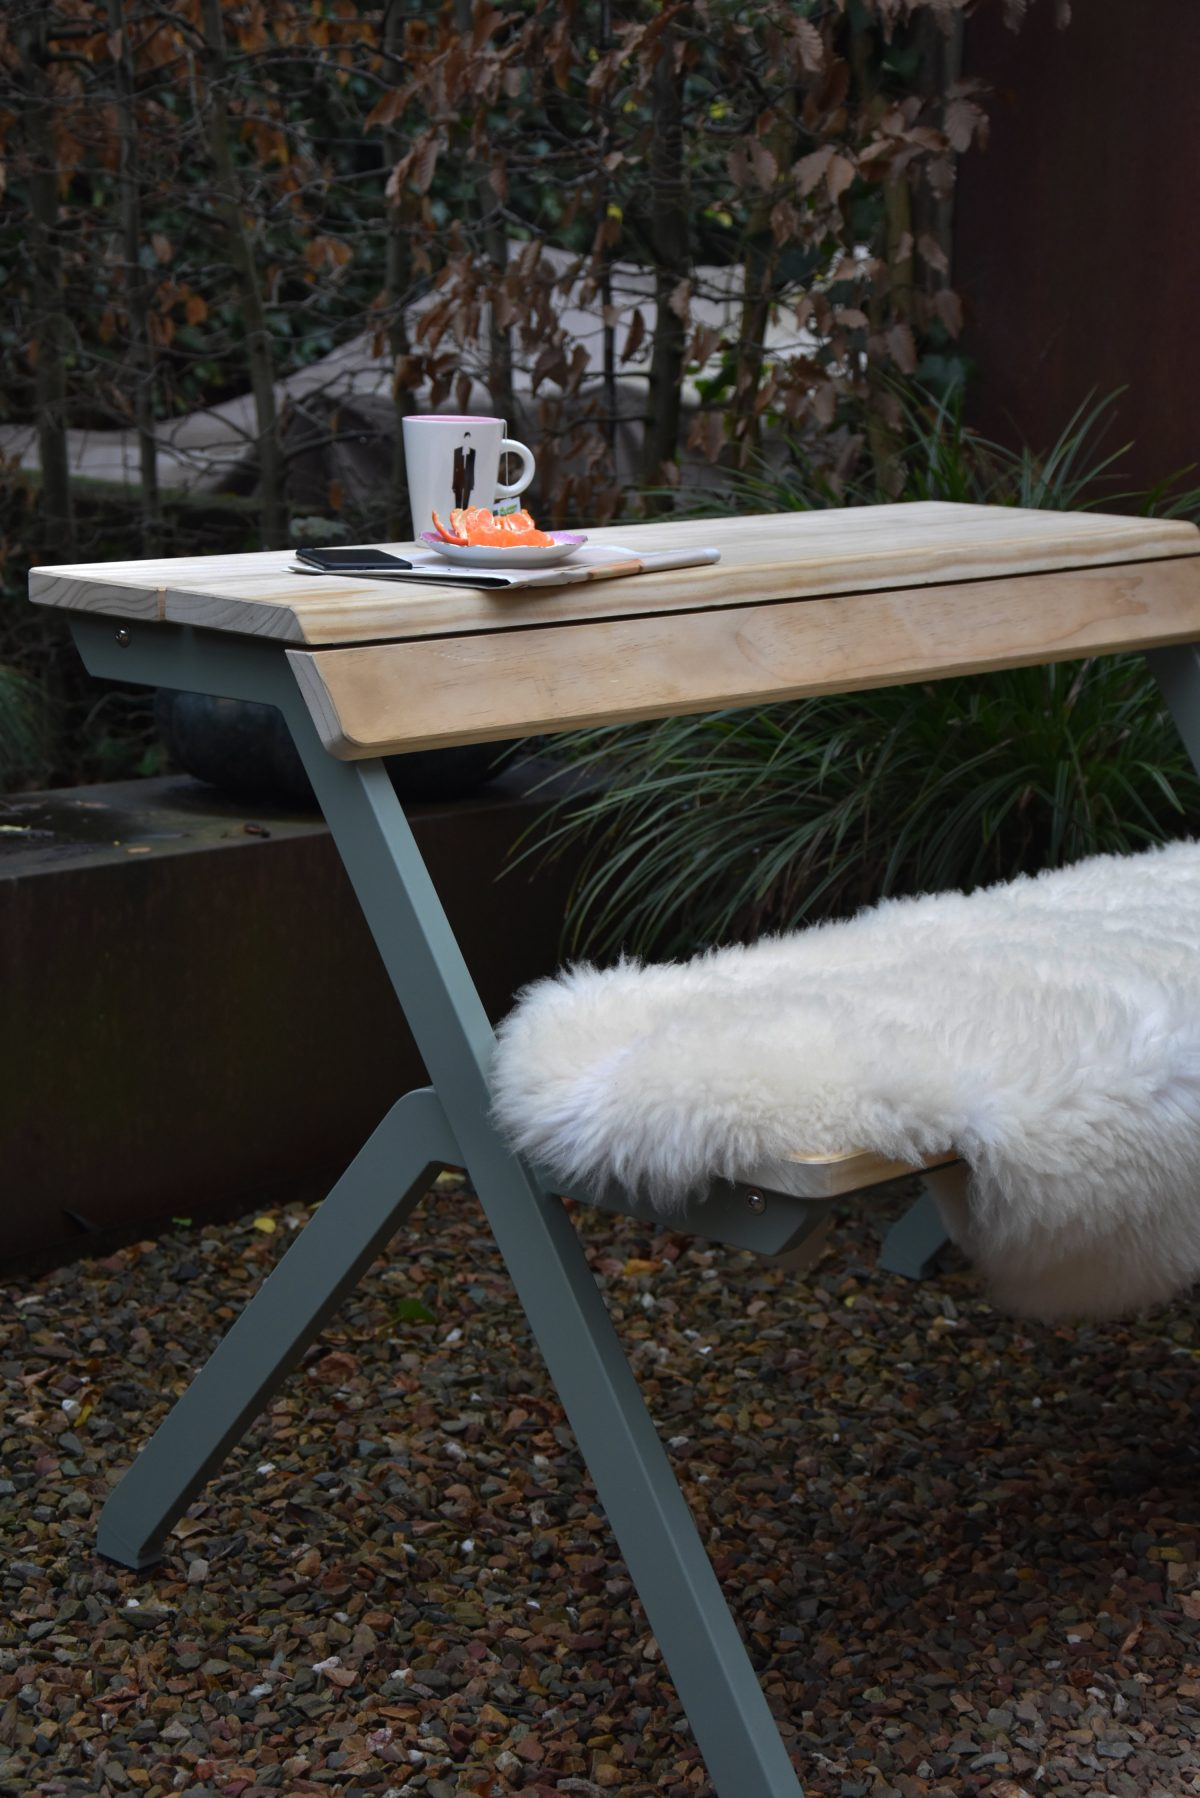 Weltevree Tablebench Outdoor Furniture Dutch Design